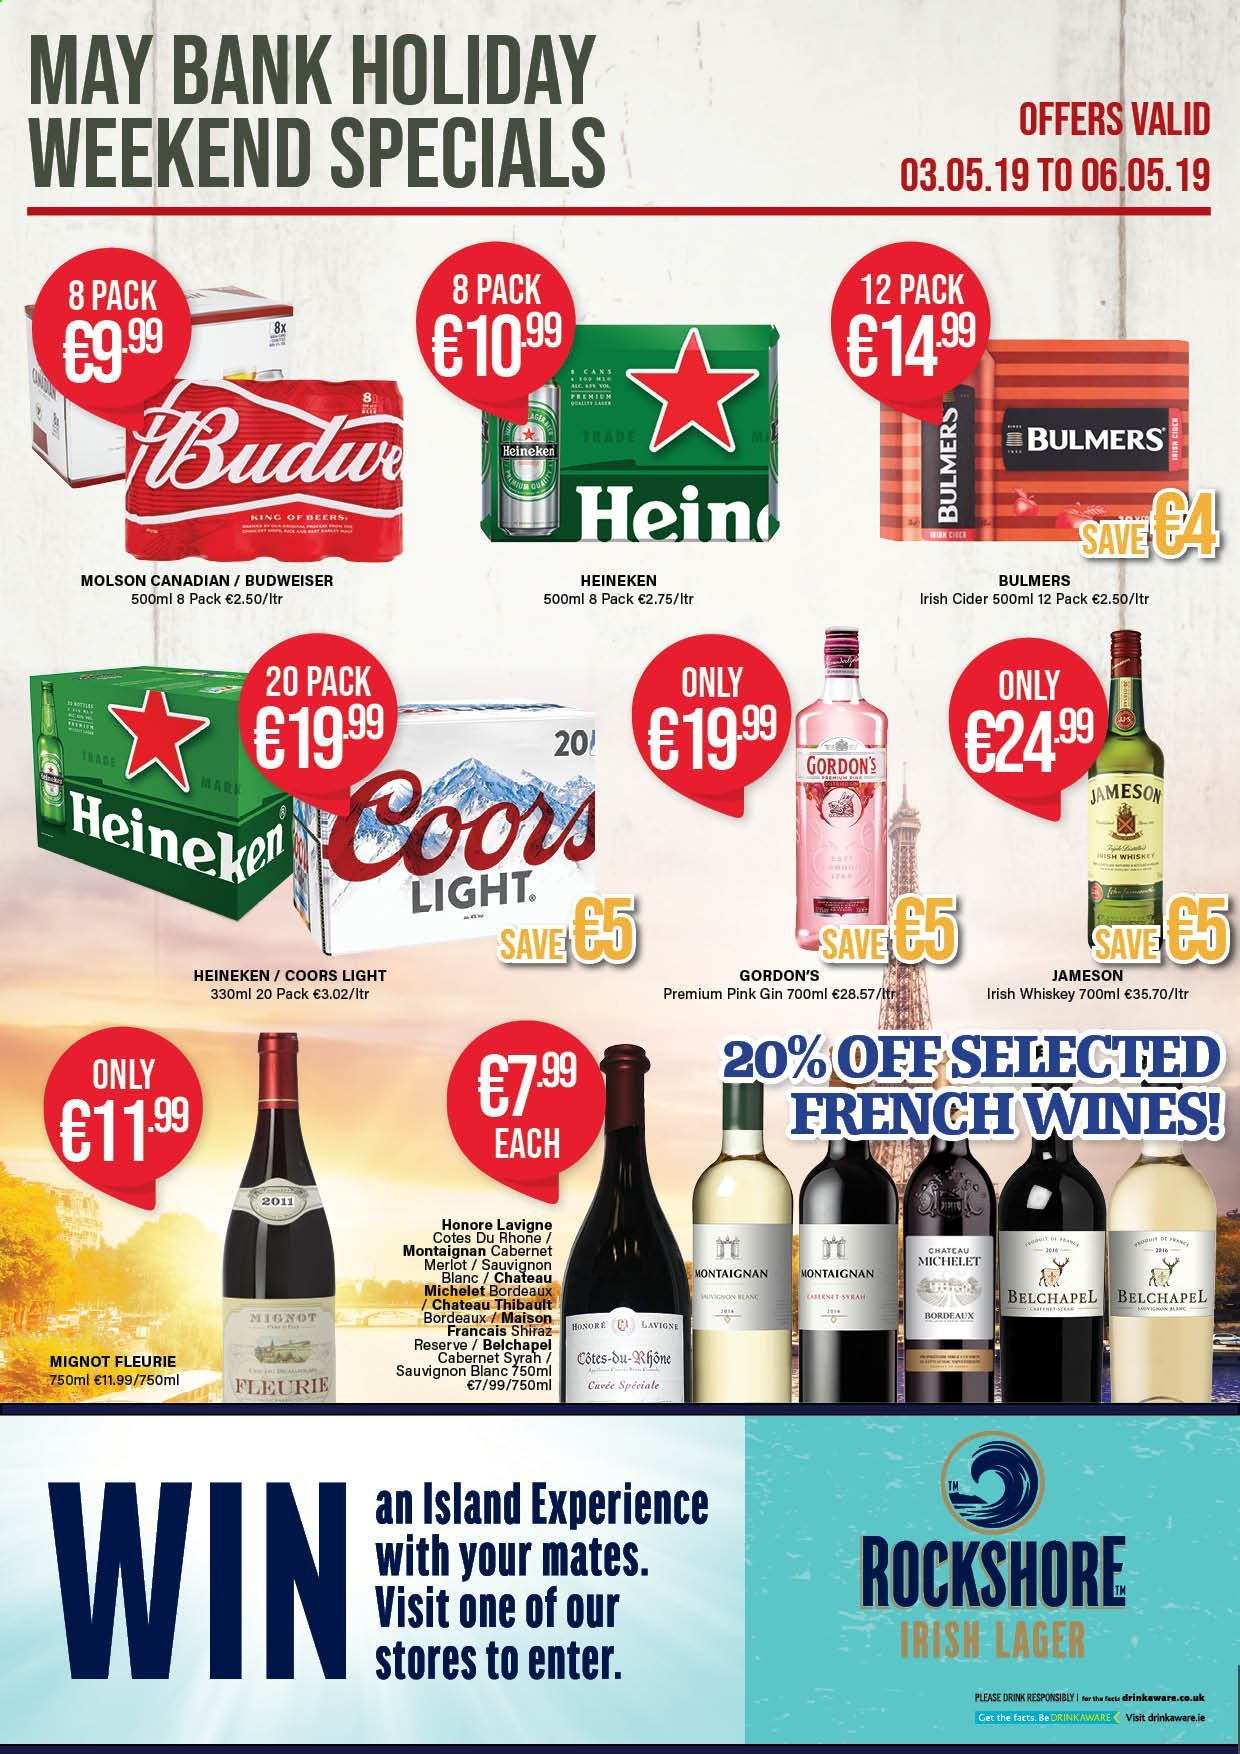 Carry Out offer  - 18.4.2019 - 29.5.2019 - Sales products - Budweiser, Coors, Cabernet Sauvignon, wine, Merlot, Shiraz, Sauvignon Blanc, apple cider, gin, whiskey, Jameson, Gordon's, Heineken. Page 5.